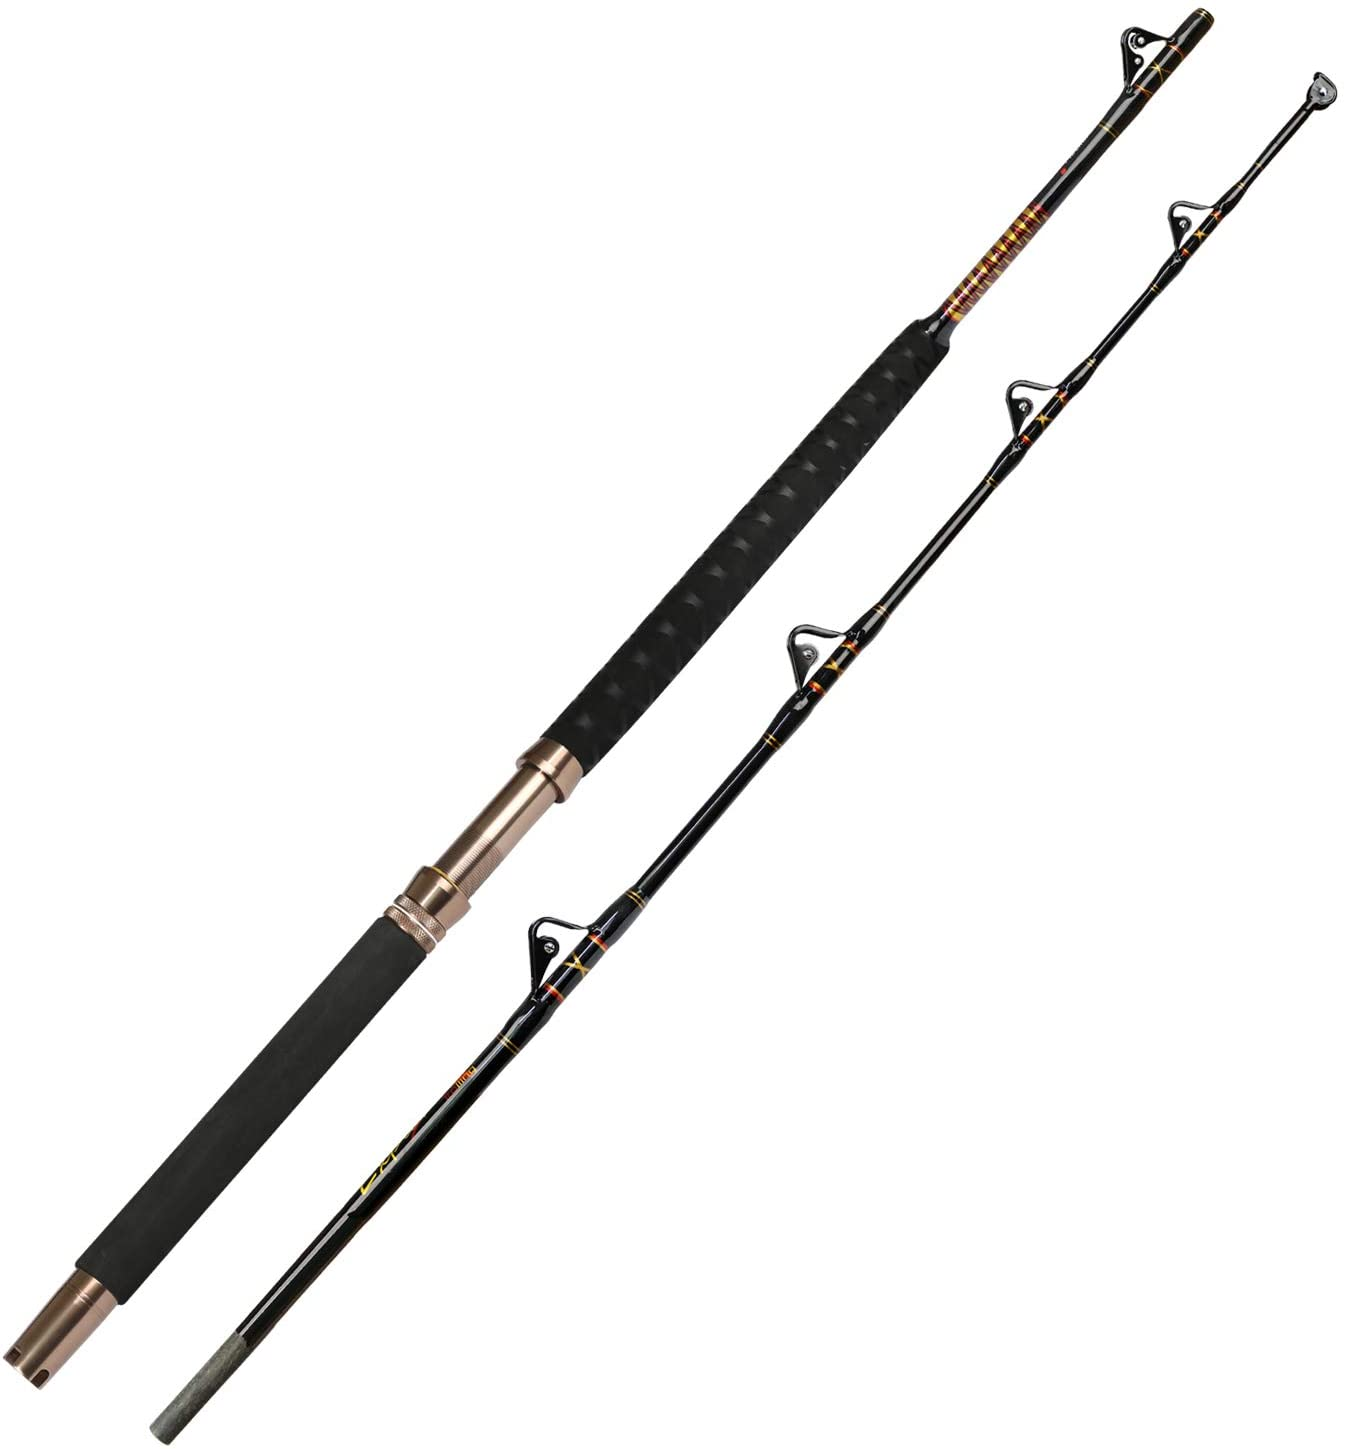 Fiblink 1-Piece/2-Piece Saltwater Offshore Heavy Trolling Rod Big Game Roller Pole Conventional Boat Fishing Rod (50-80lb/80-120lb, 5-Feet 1-Inch)